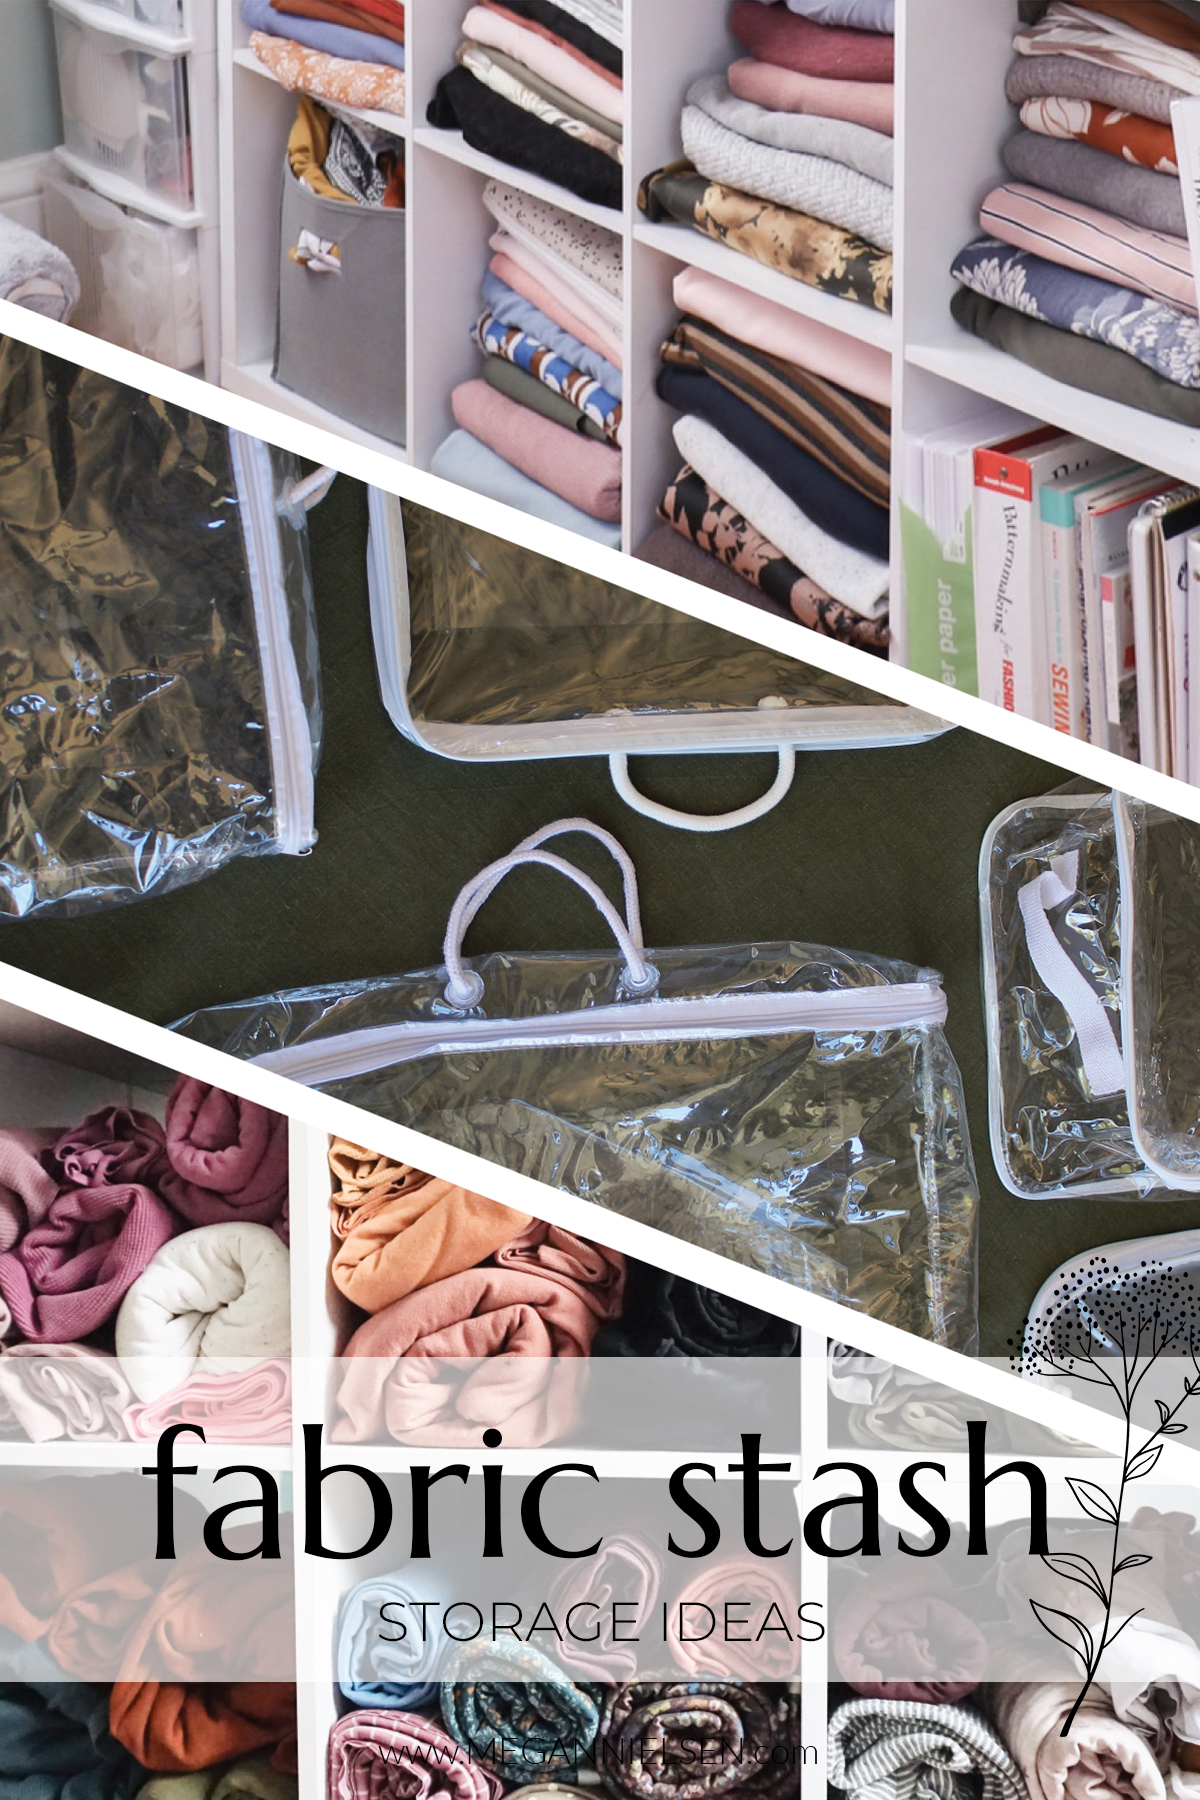 Fabric Stash Storage ideas